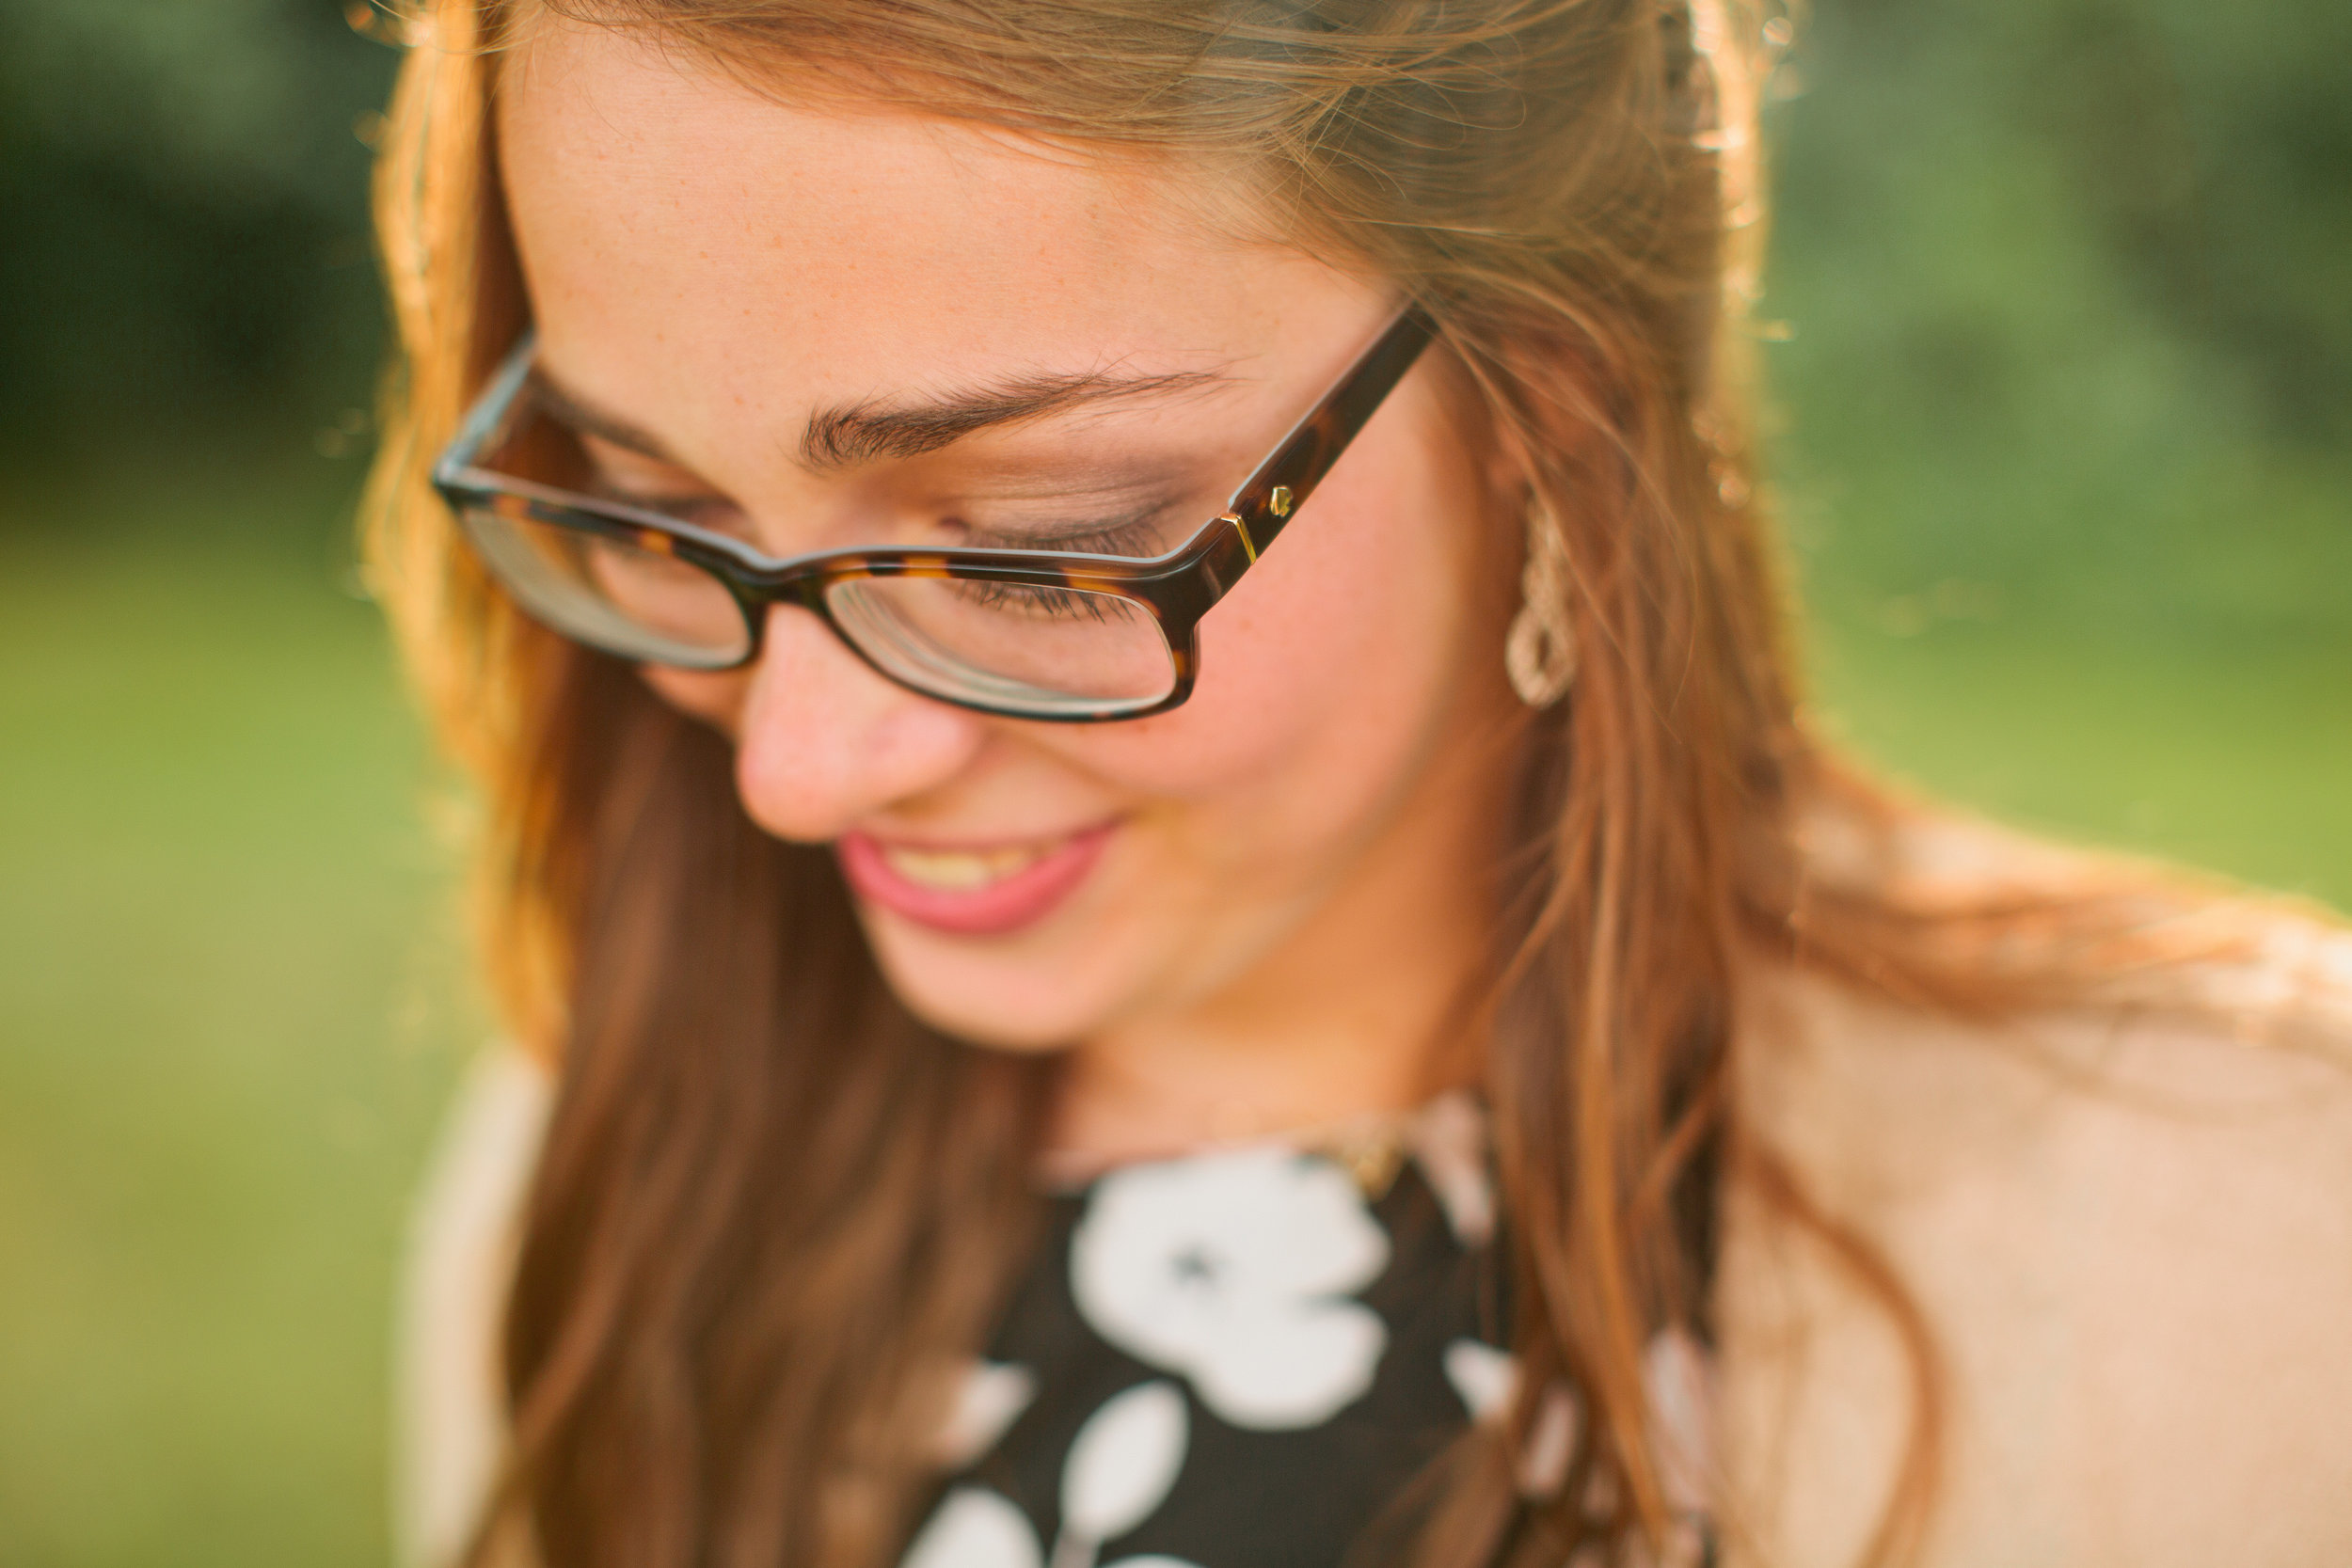 senior girl wearing glasses and earrings with curled hair senior pictures